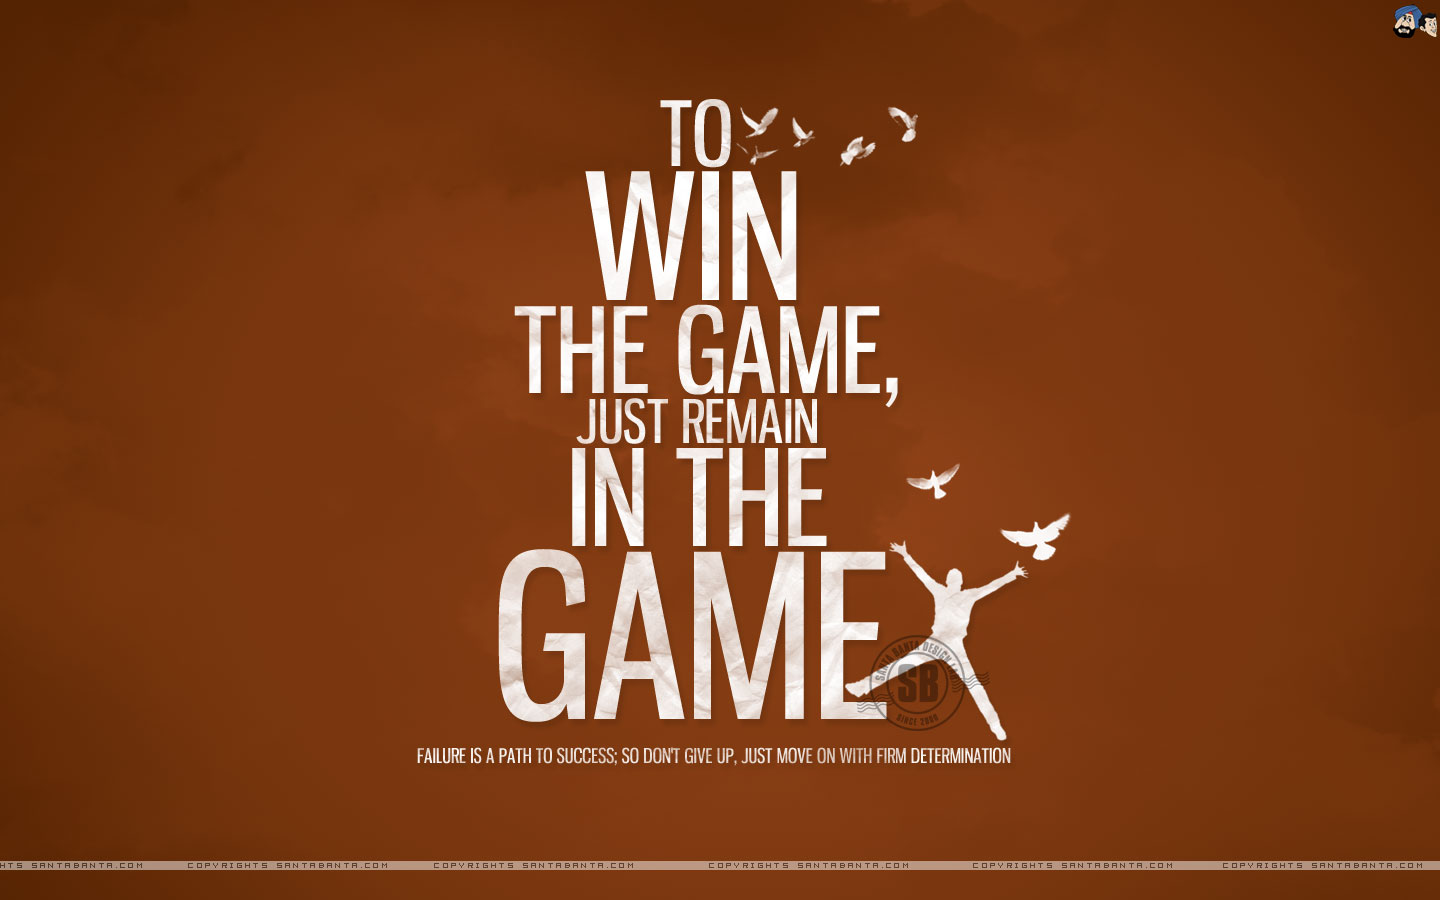 To win the game by SantaBanta.com